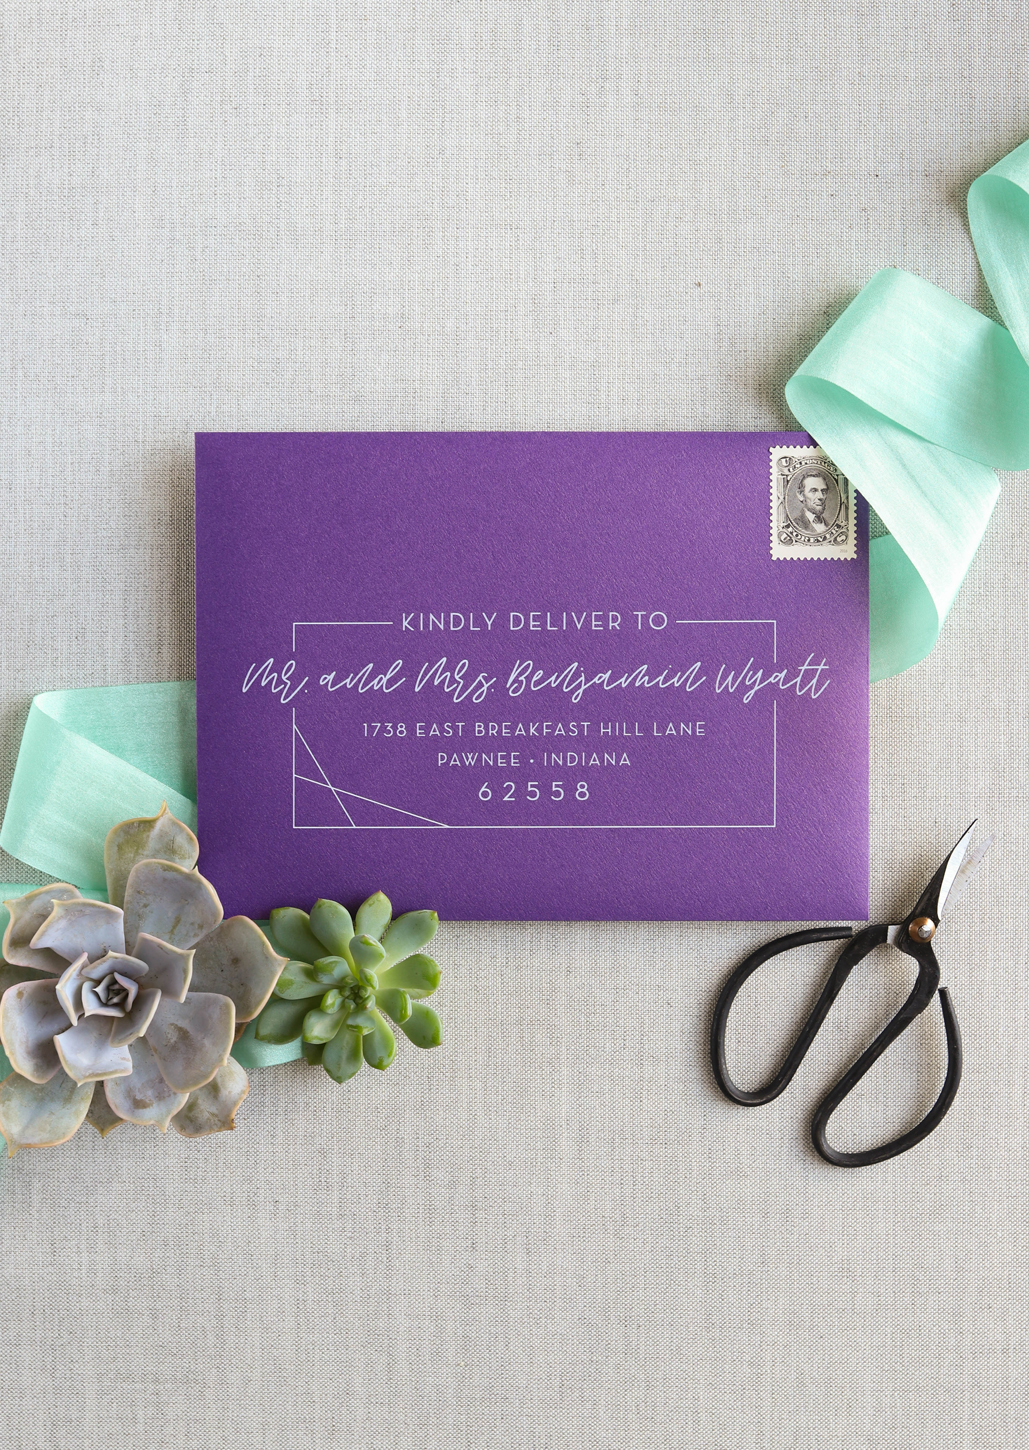 unique and exciting wedding invitation envelopes, guest addressing printed with white ink, modern and cool envelope ideas for modern weddings